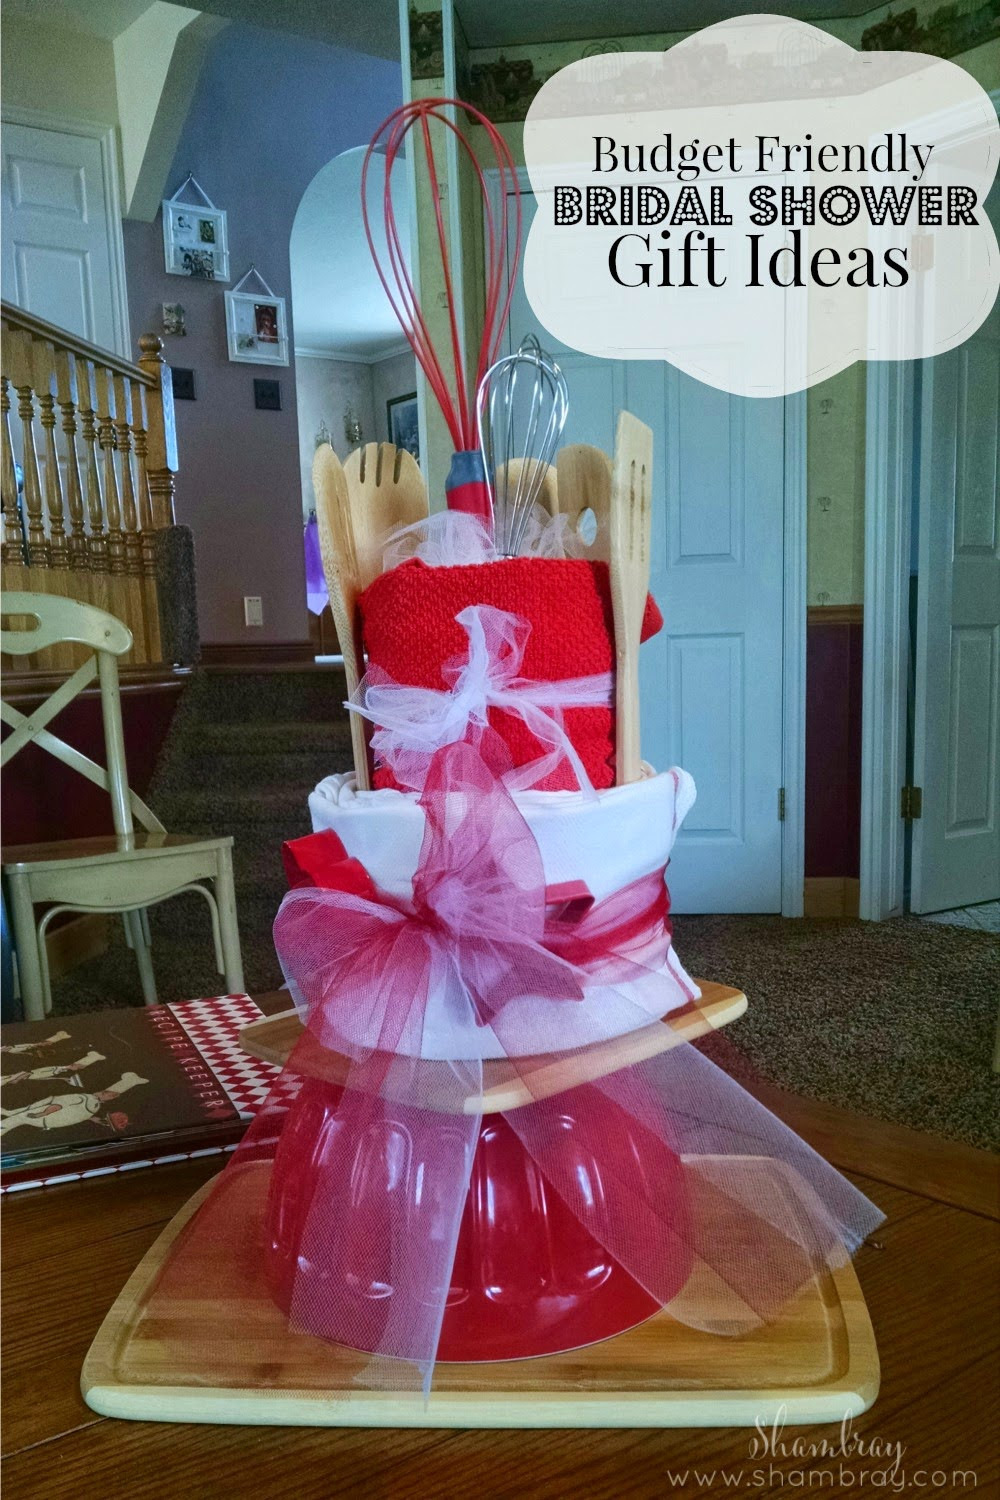 Best ideas about Bridal Shower Gift Ideas . Save or Pin Shambray Bud Friendly Bridal Shower Gift Ideas Now.